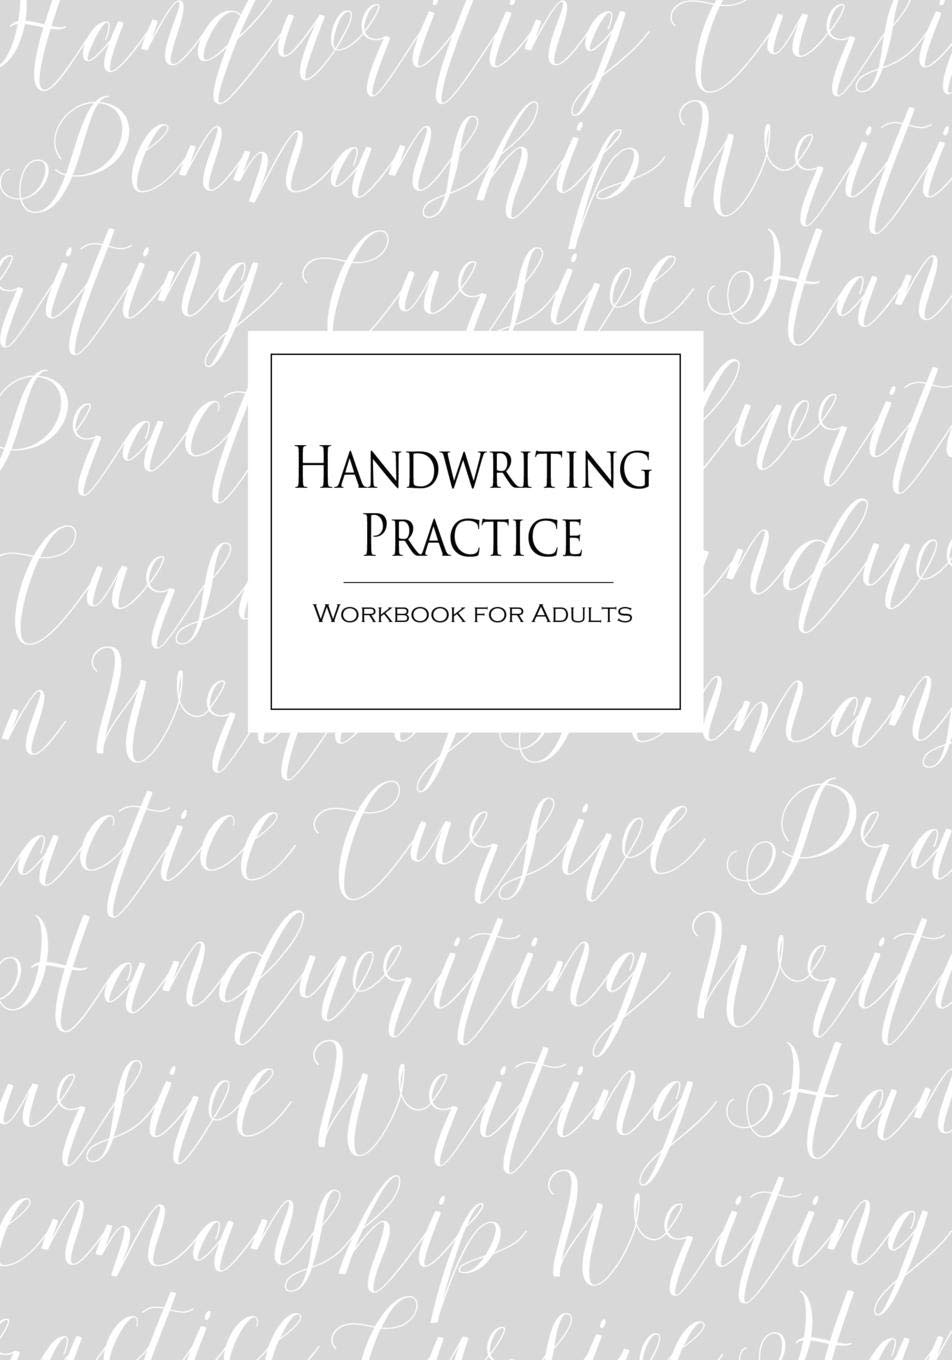 Handwriting Practice Workbook for Adults: Cursive Writing